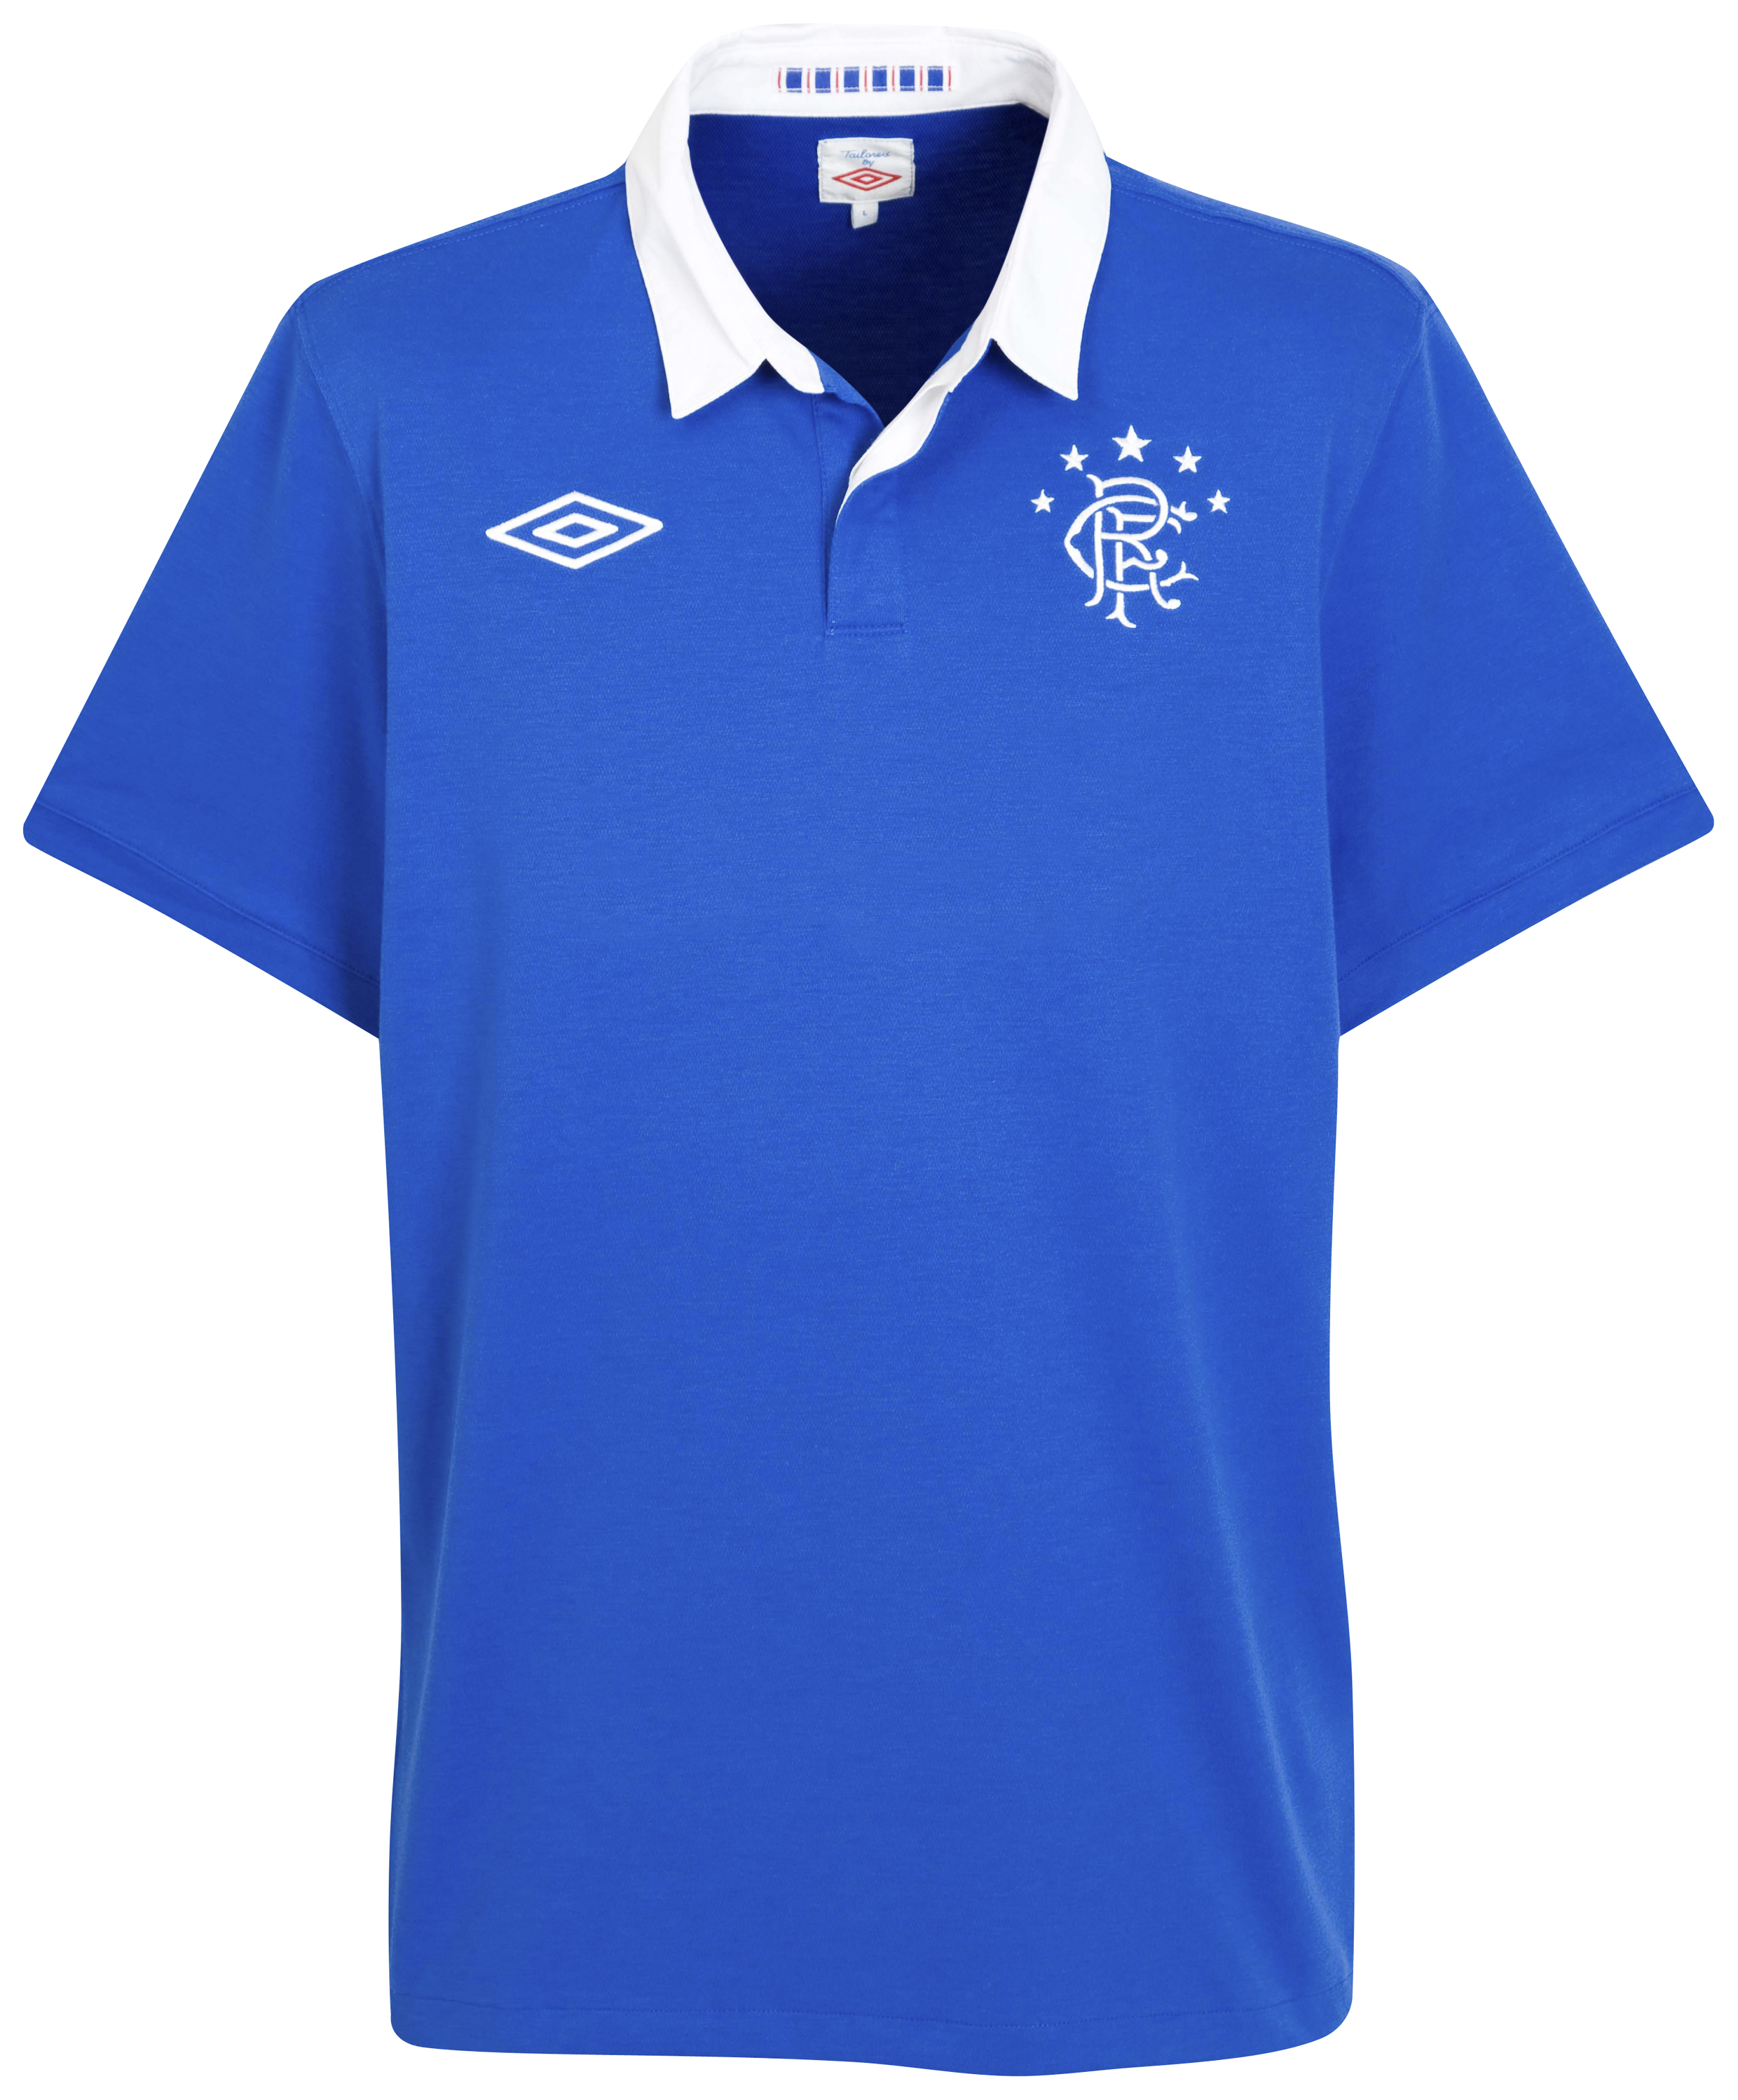 Glasgow Rangers Home Shirt 2010/11 - Kids